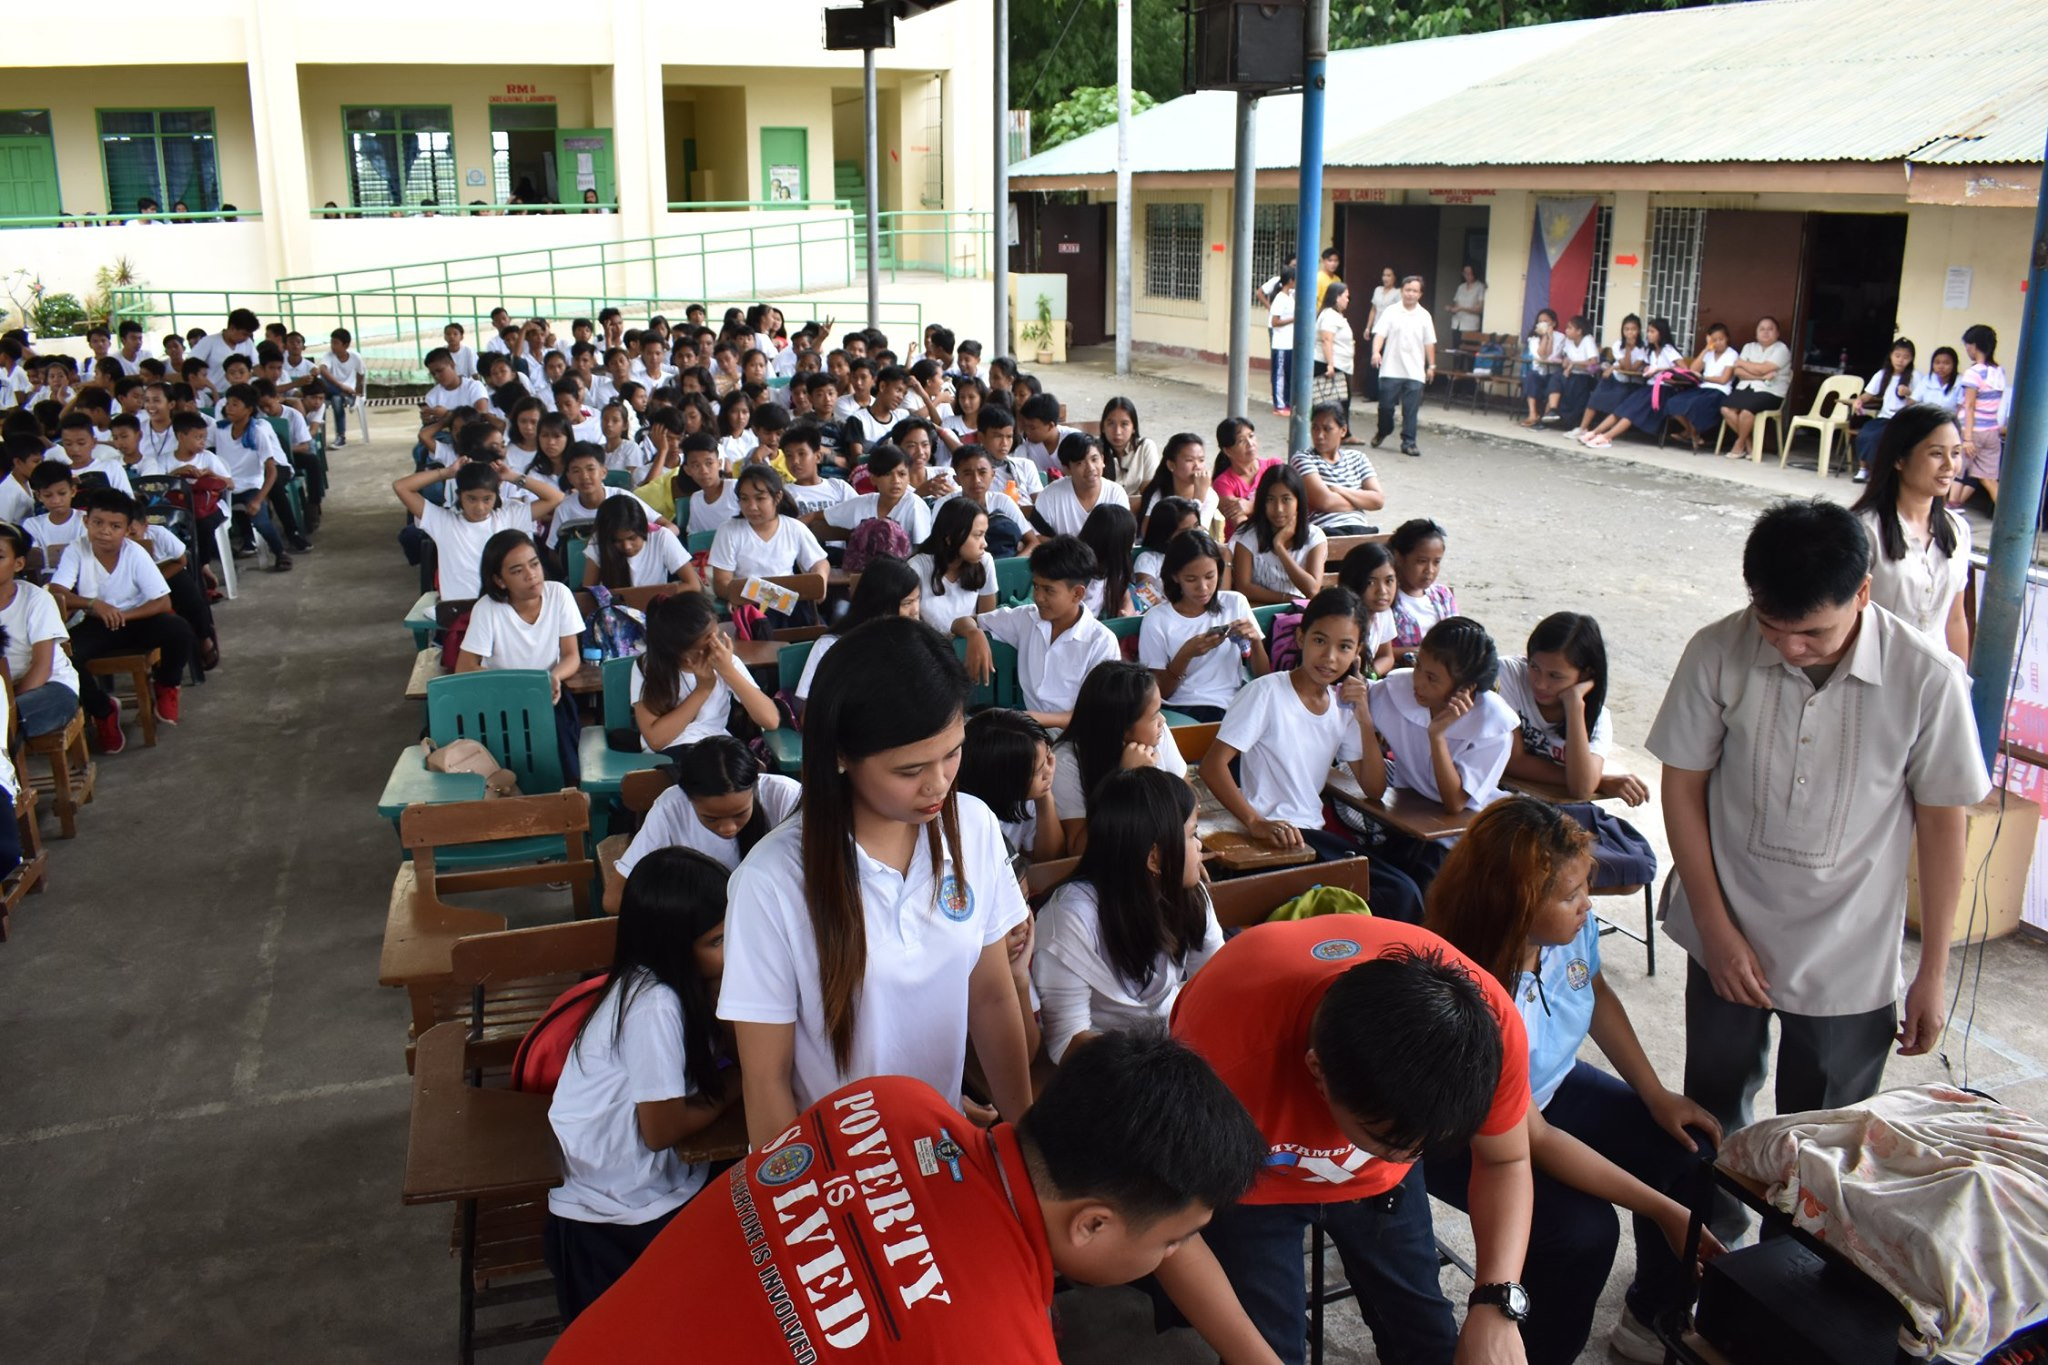 BPRAT's Anti-Bullying, Anti-Child Labor Campaign is Brought to Moises Rebamontan NHS